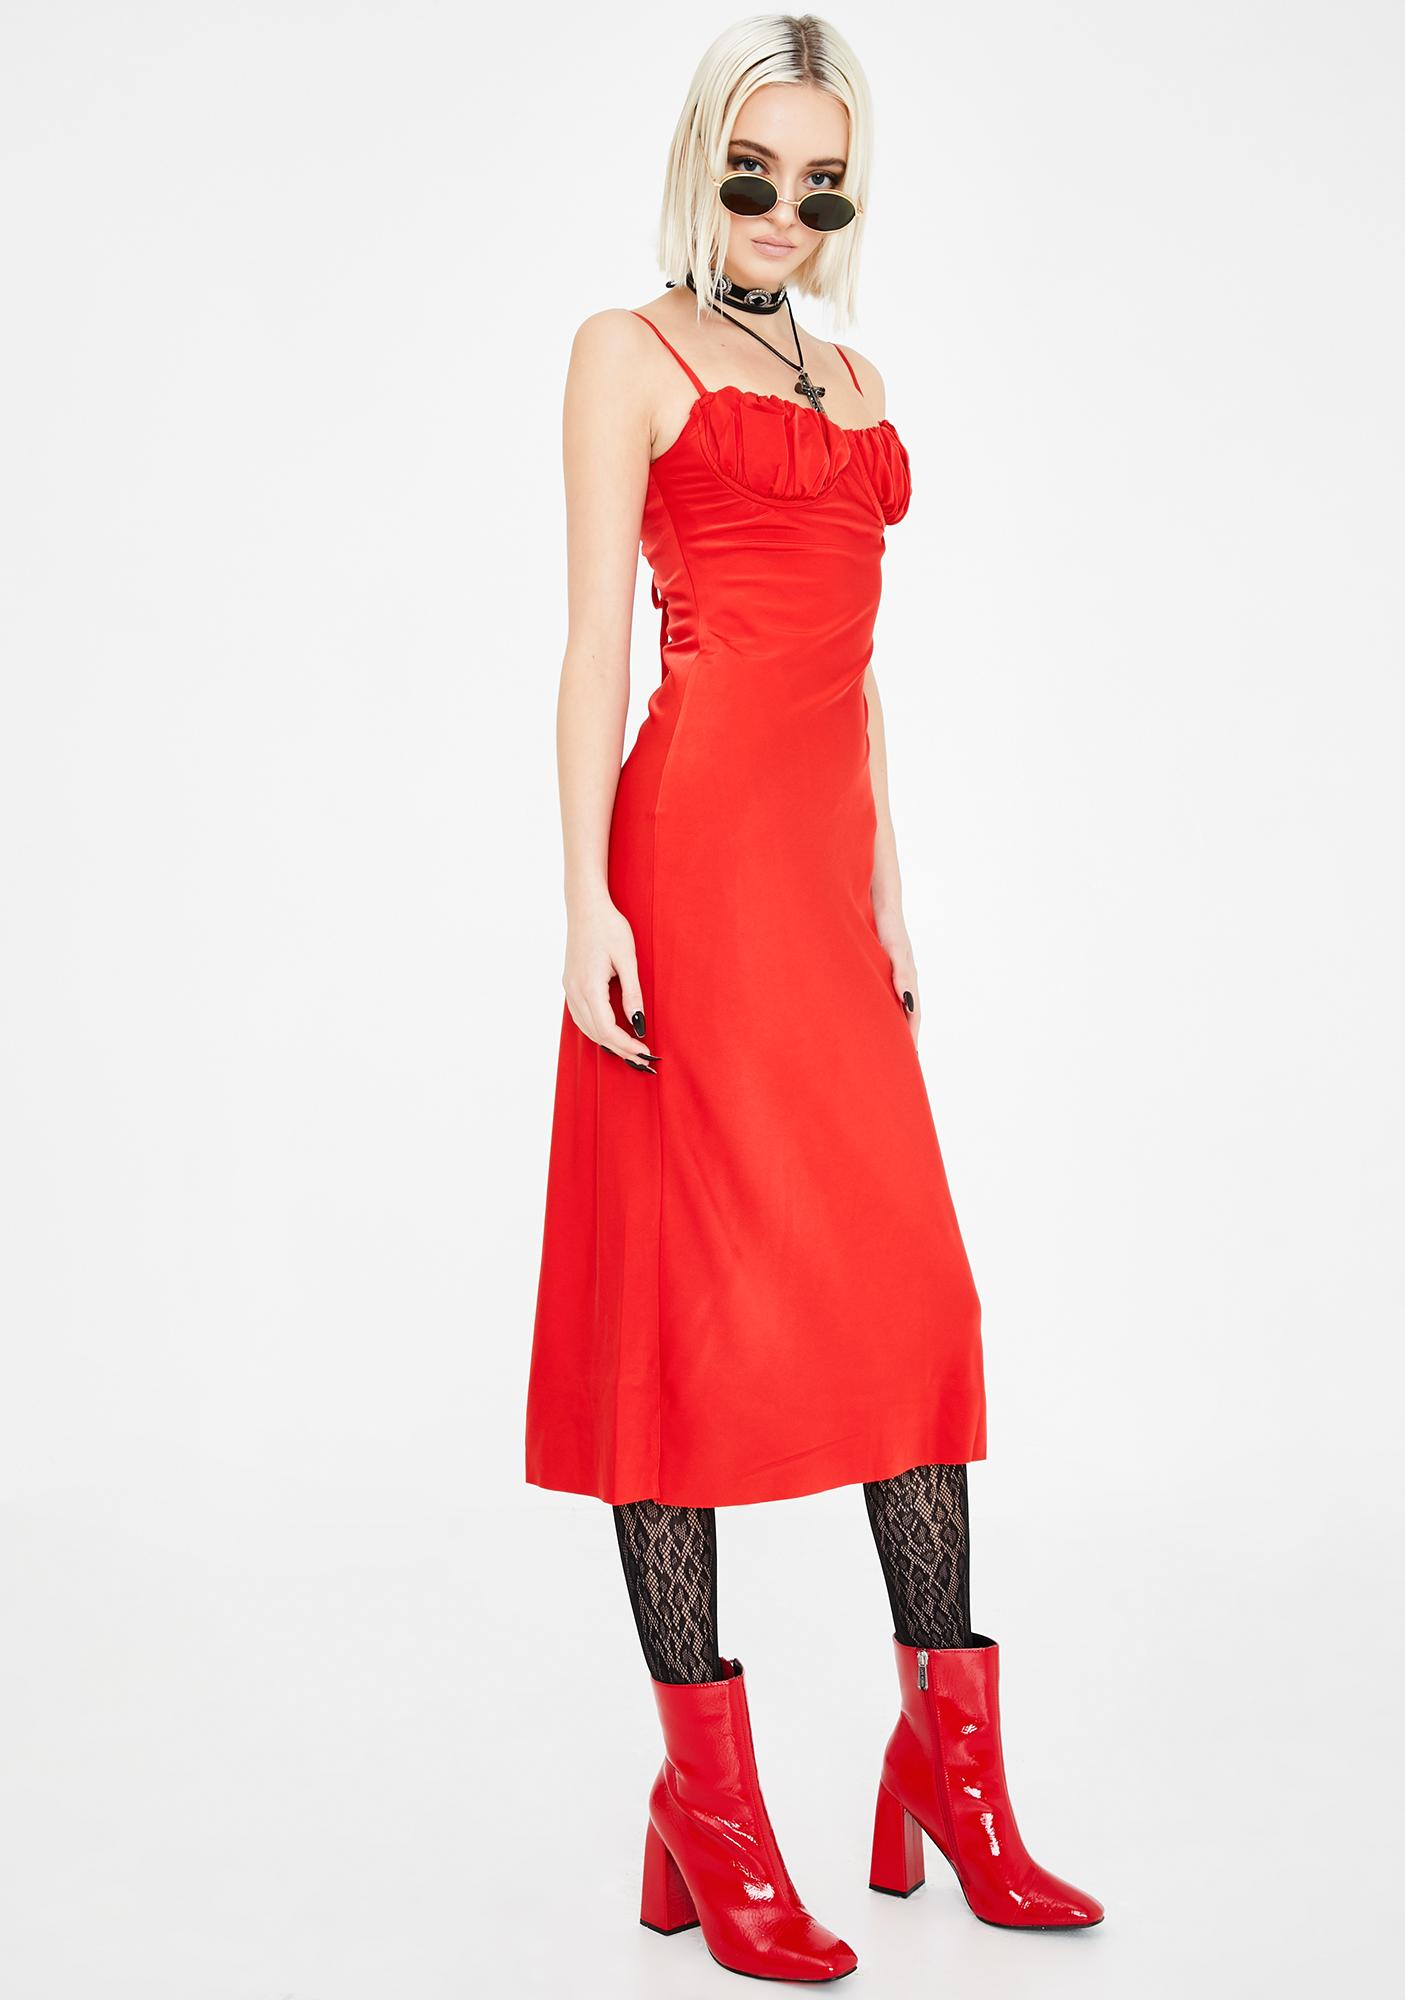 Jagger & Stone Red Christy Bustier Midi Dress